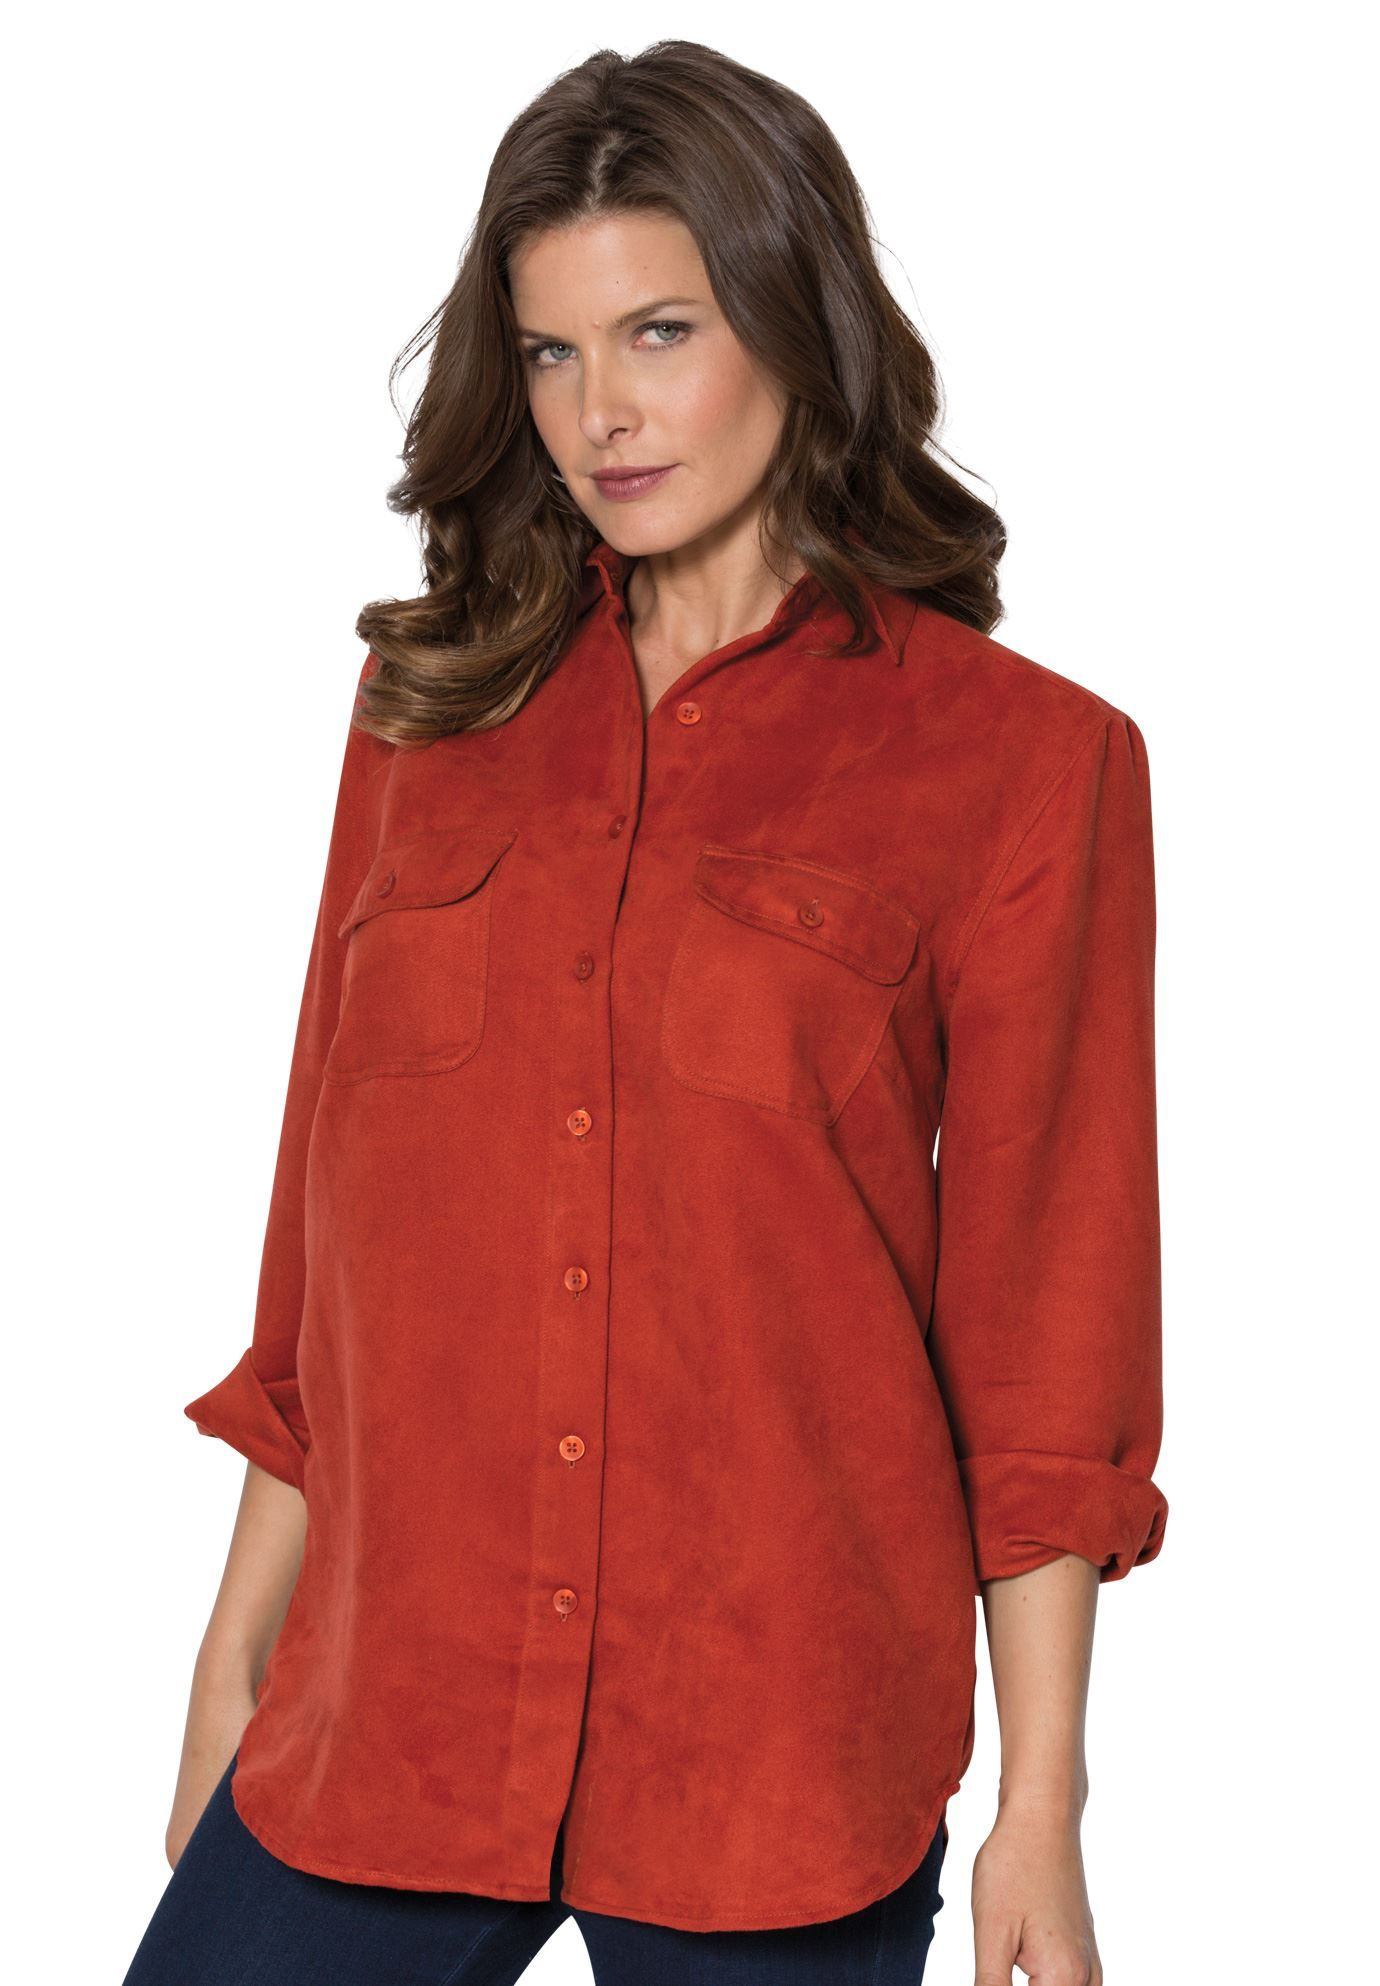 Red ochre aline silhouette suedelike fabric button front with